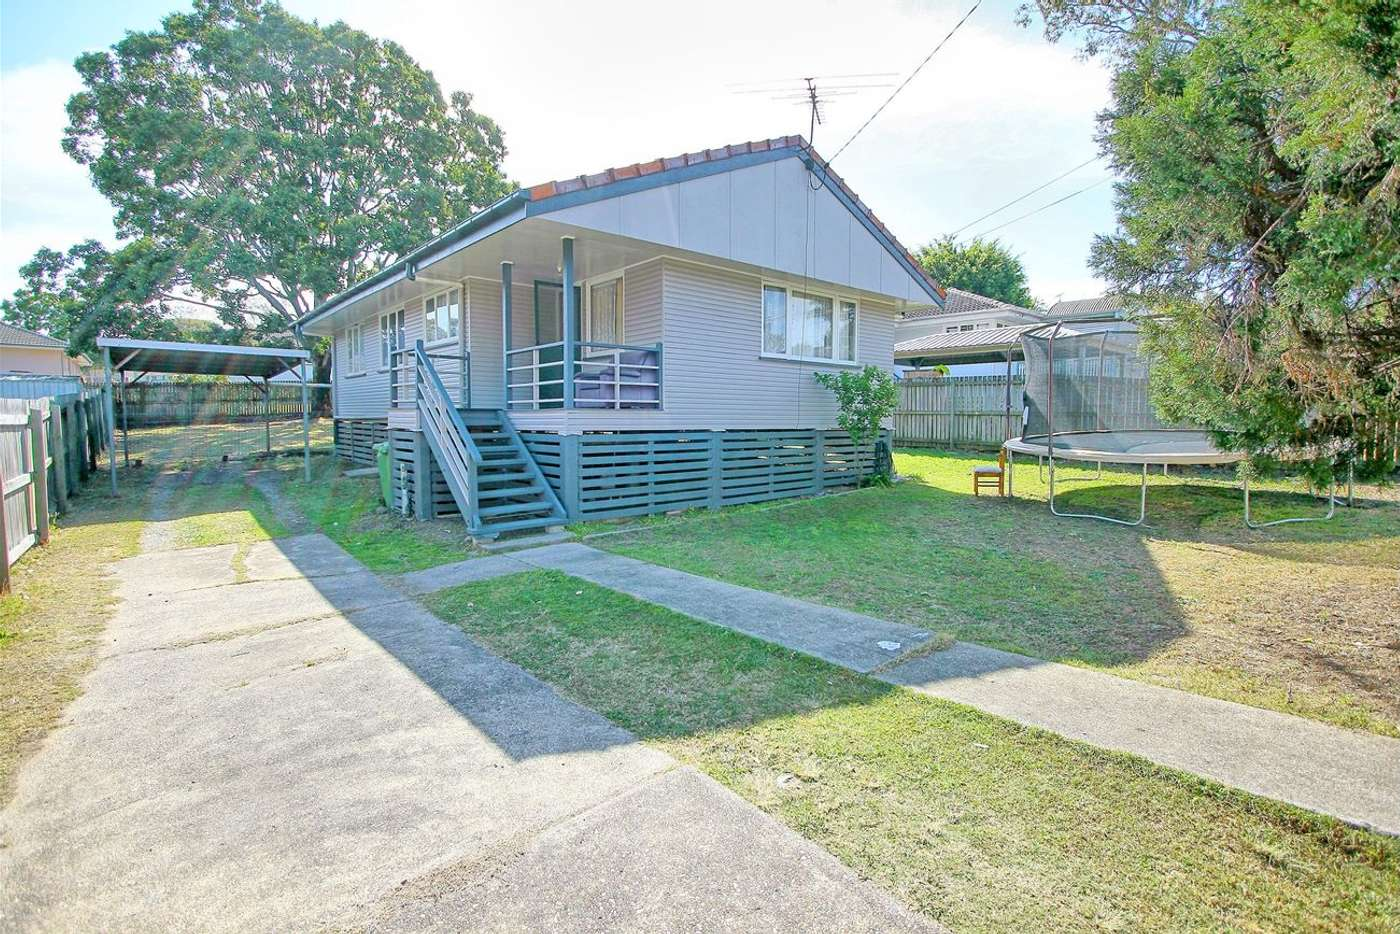 Main view of Homely house listing, 17 Mullen Street, Woodridge QLD 4114